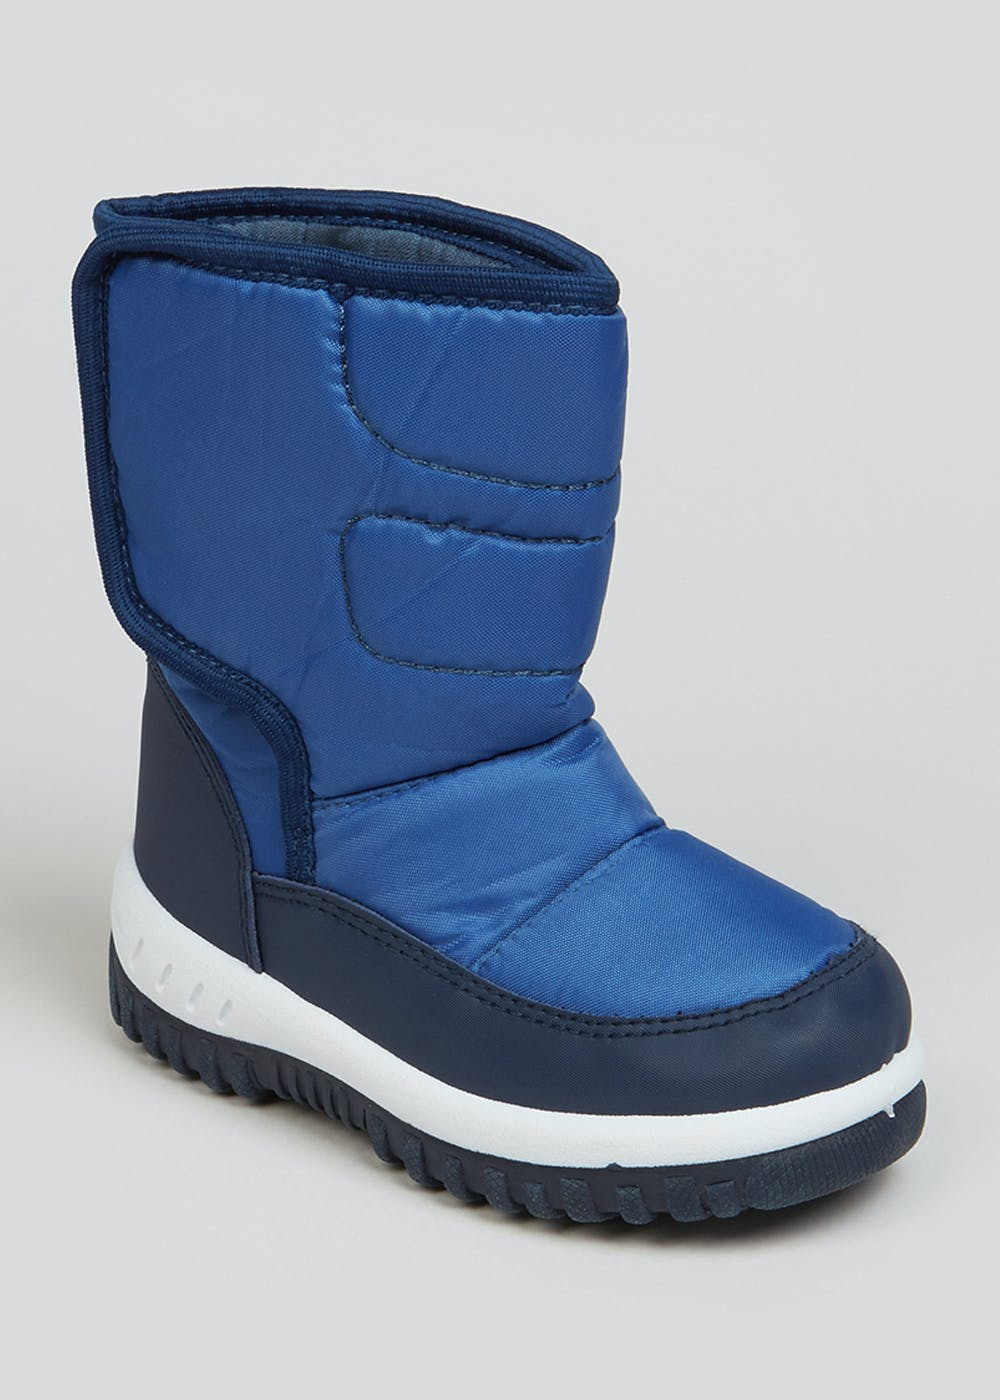 Boys Blue Snow Boots (Younger 4-12